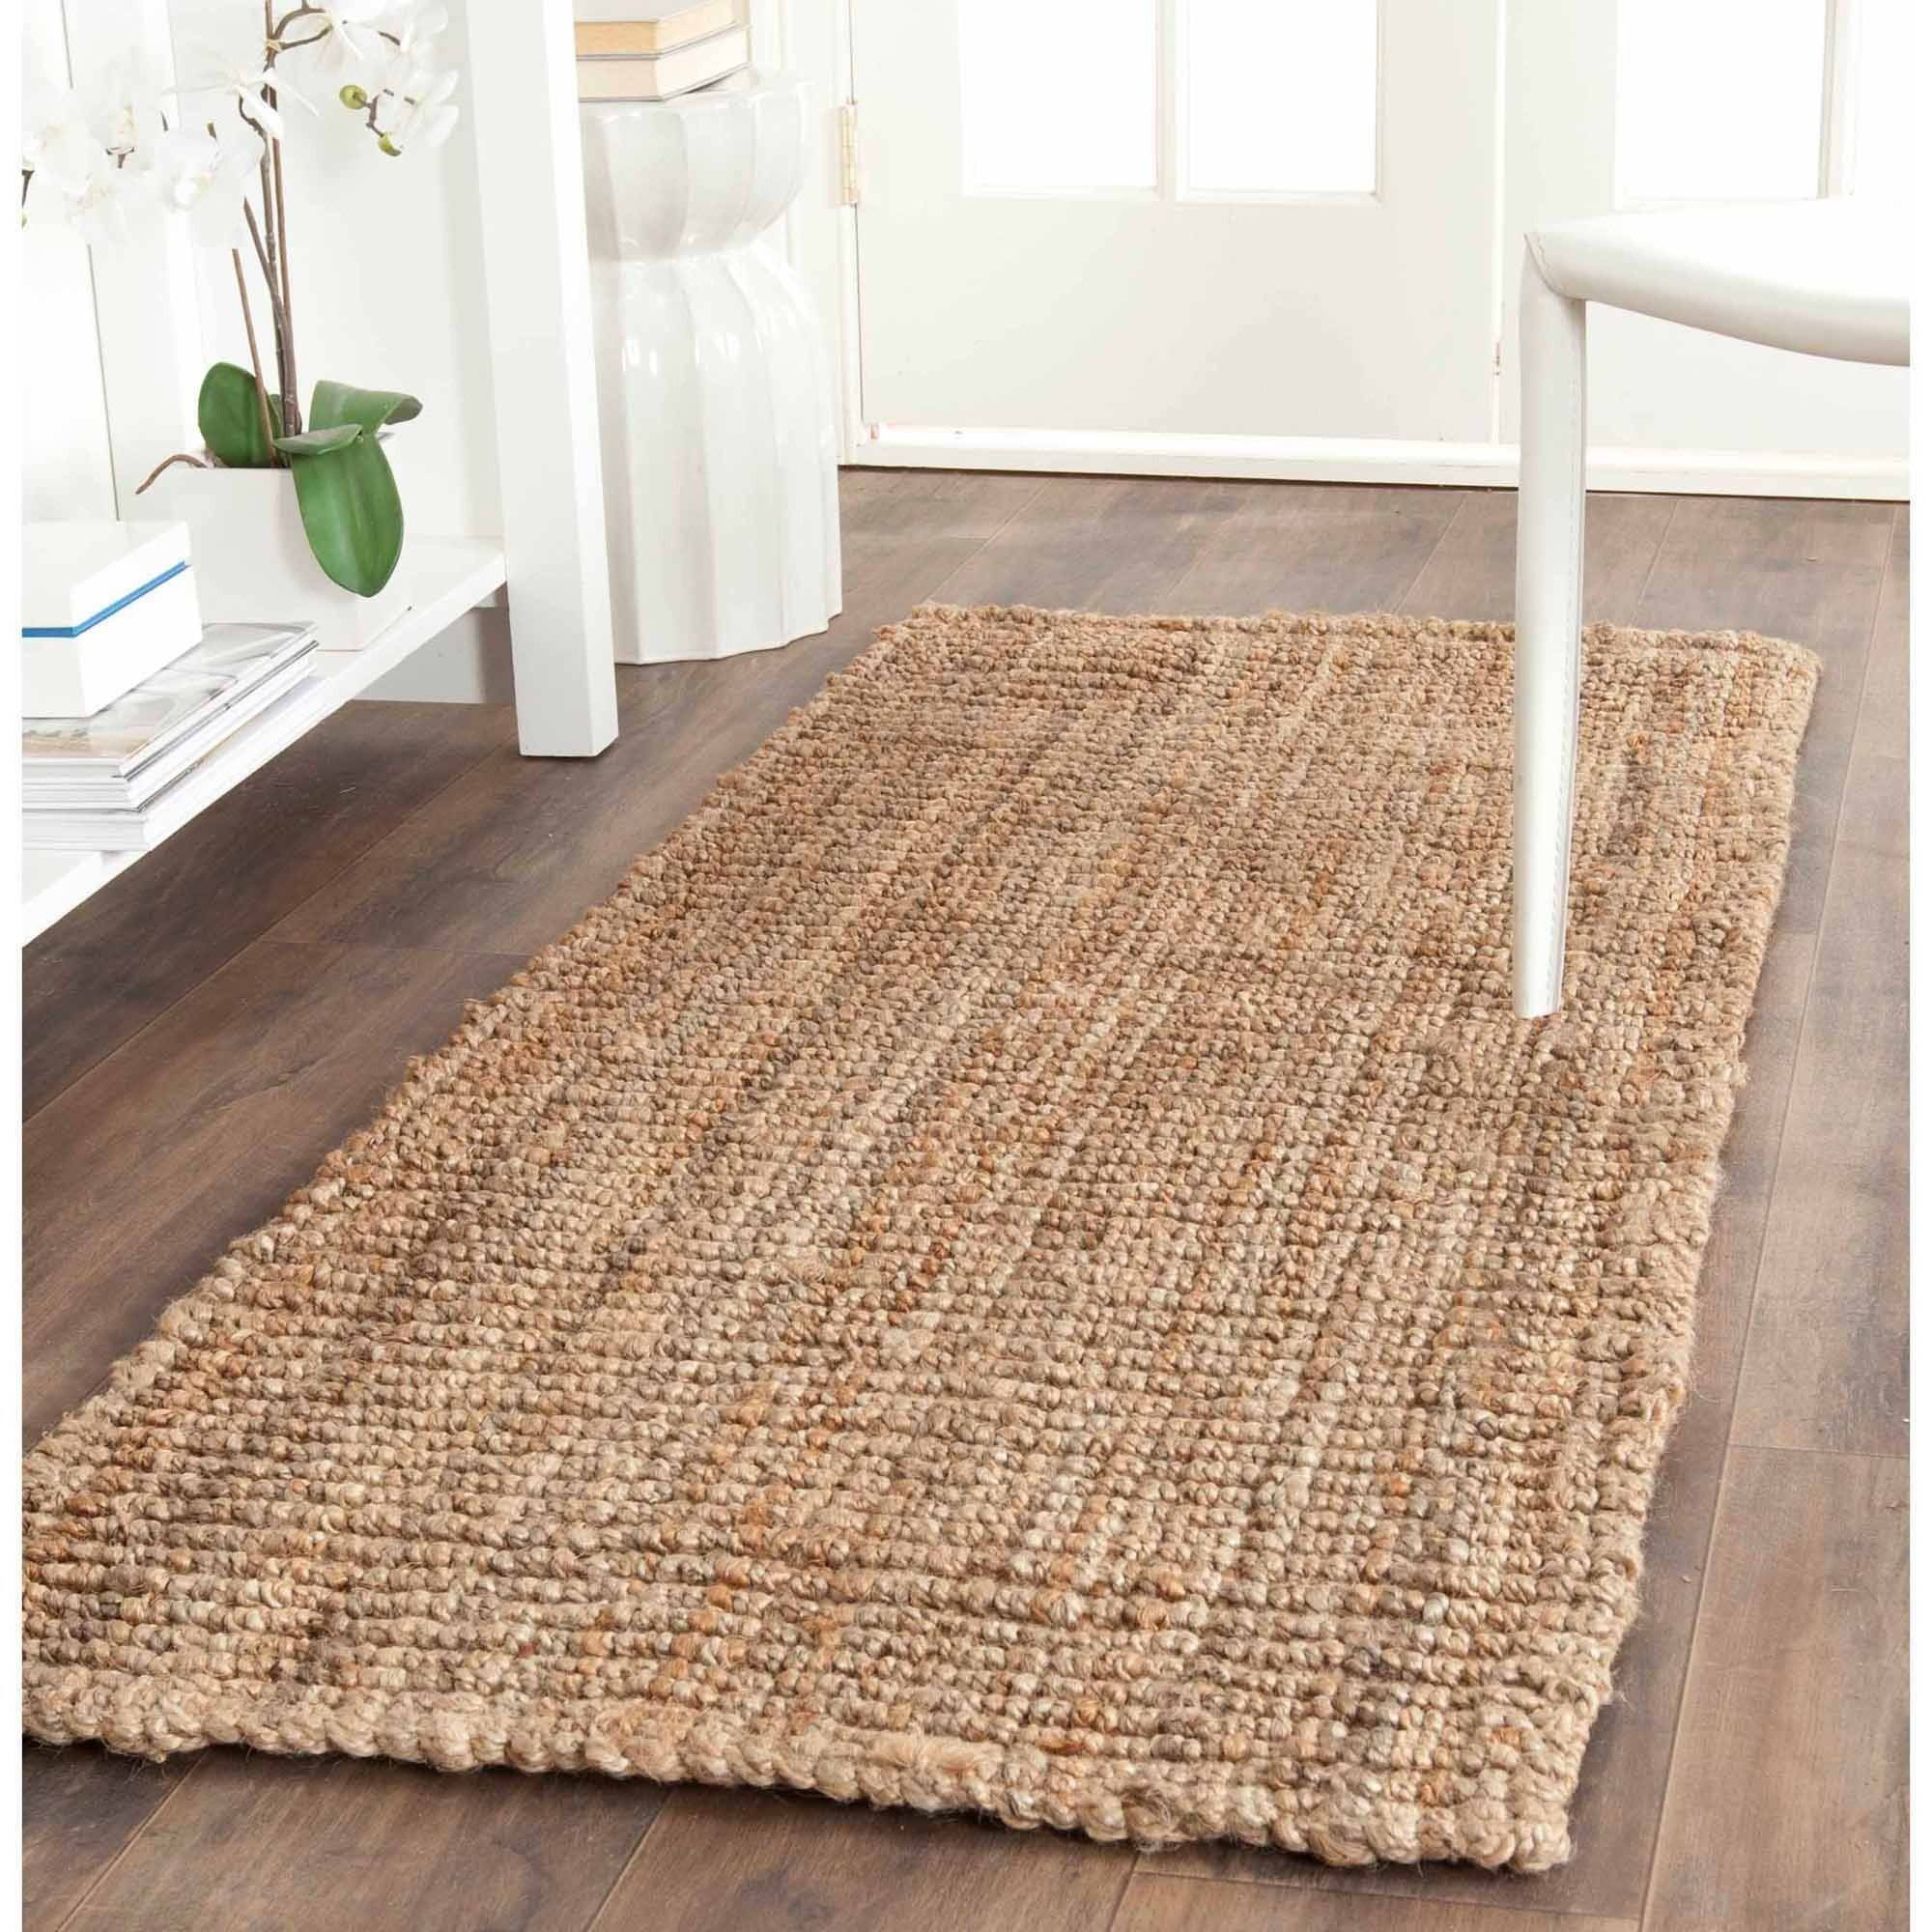 Safavieh Runner Rug, Natural Fiber